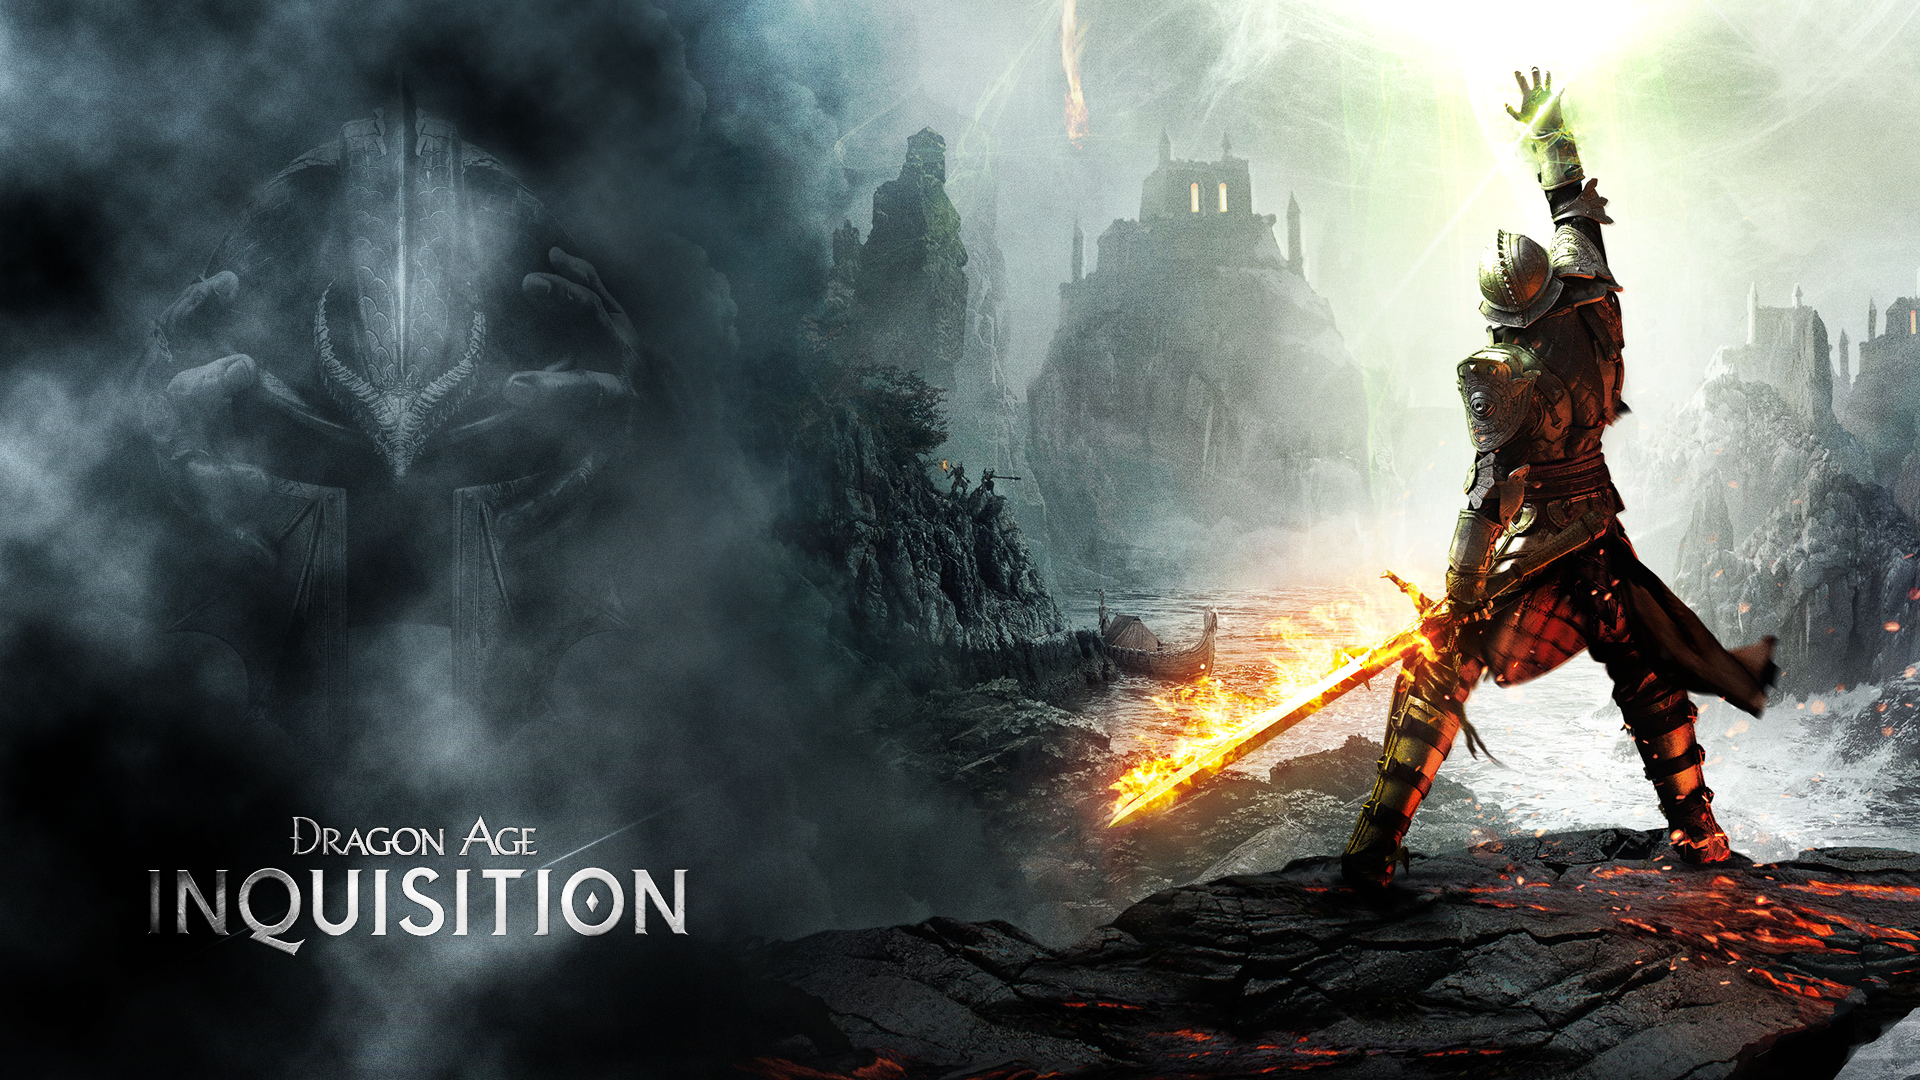 dragon age inquisition game wallpaper hd